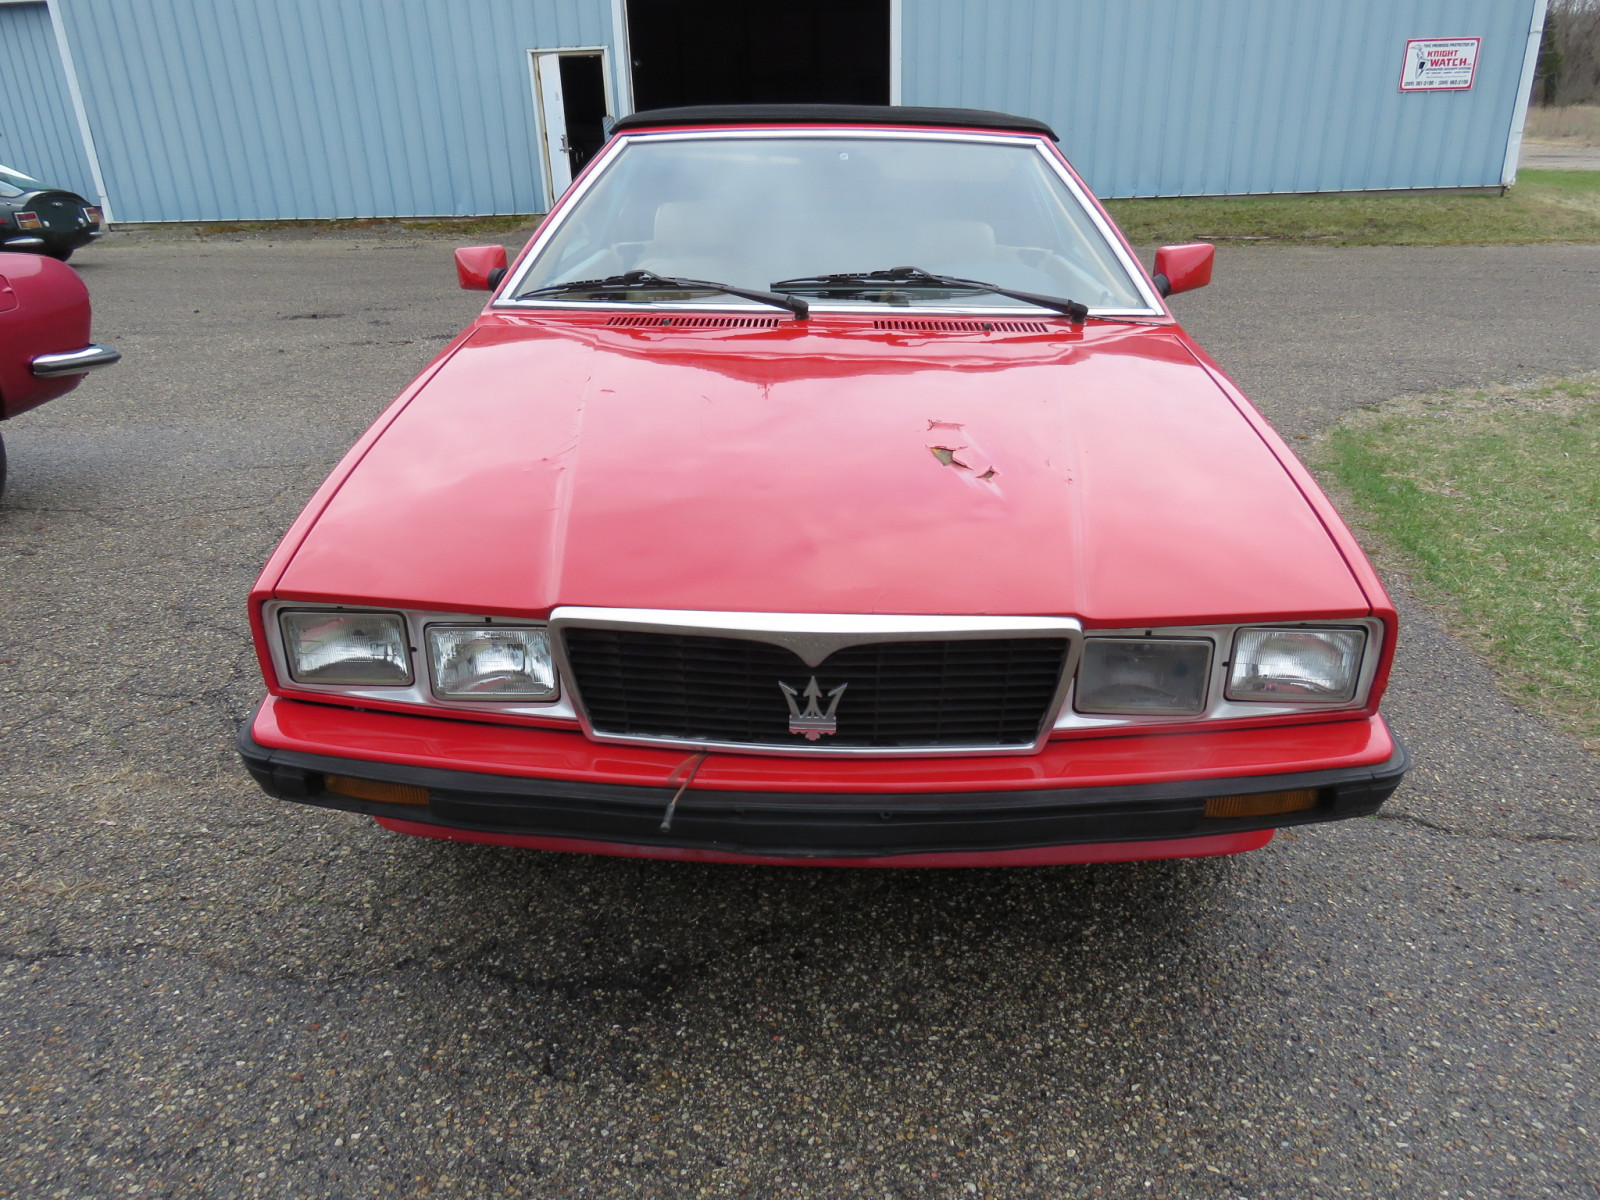 1986 MaserattiB1 Turbo Convertible - Image 2